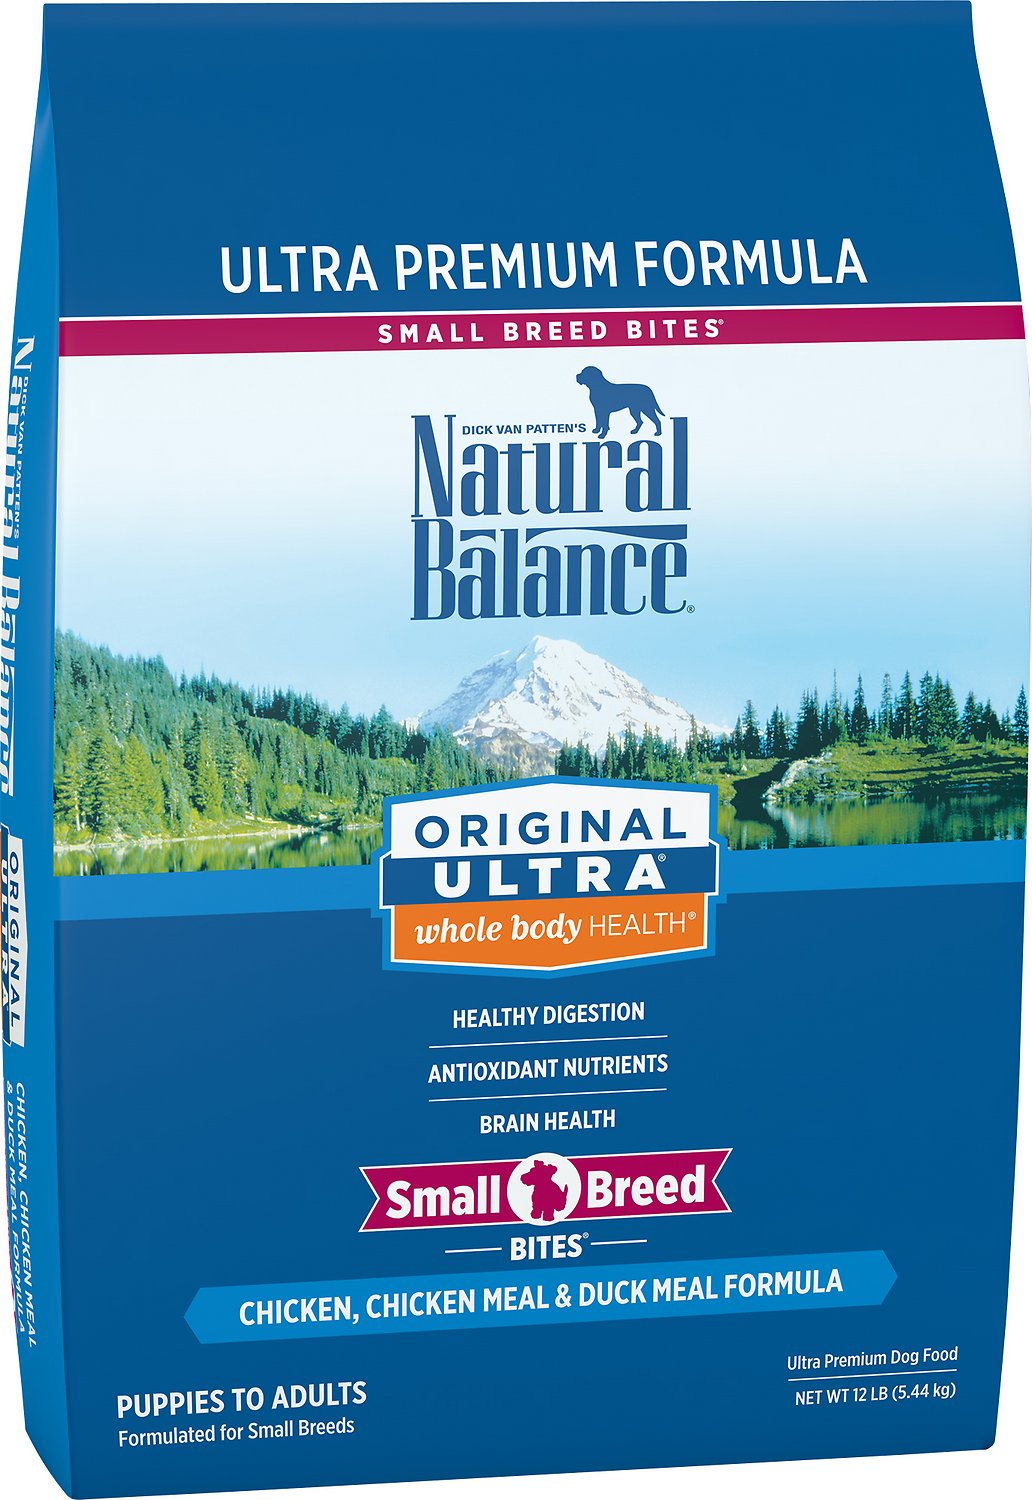 Natural Balance Original Ultra Whole Body Health Chicken